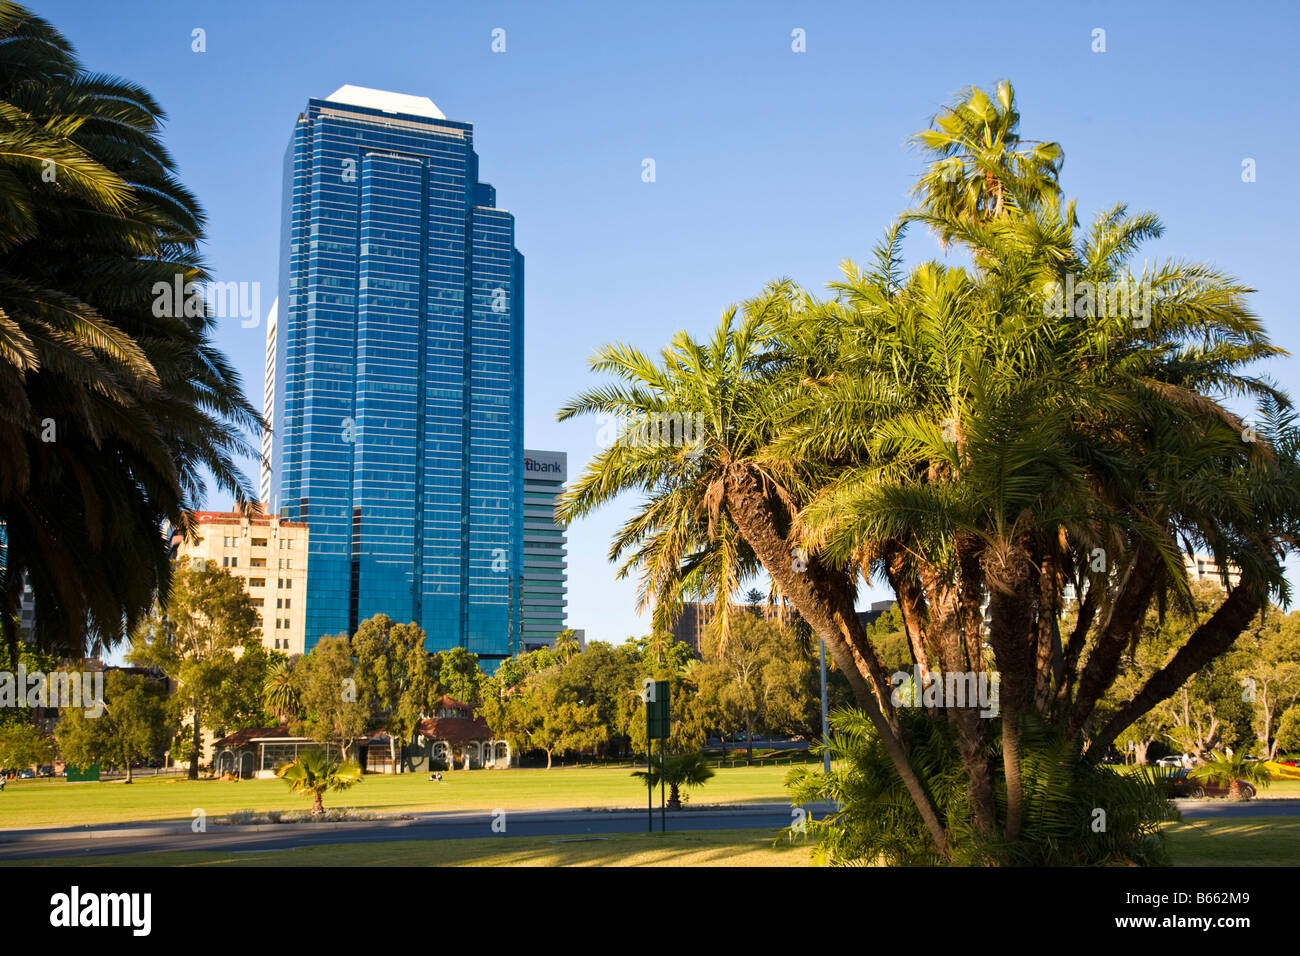 Trees Perth Western Australia with tall buildings in the background - Stock Image